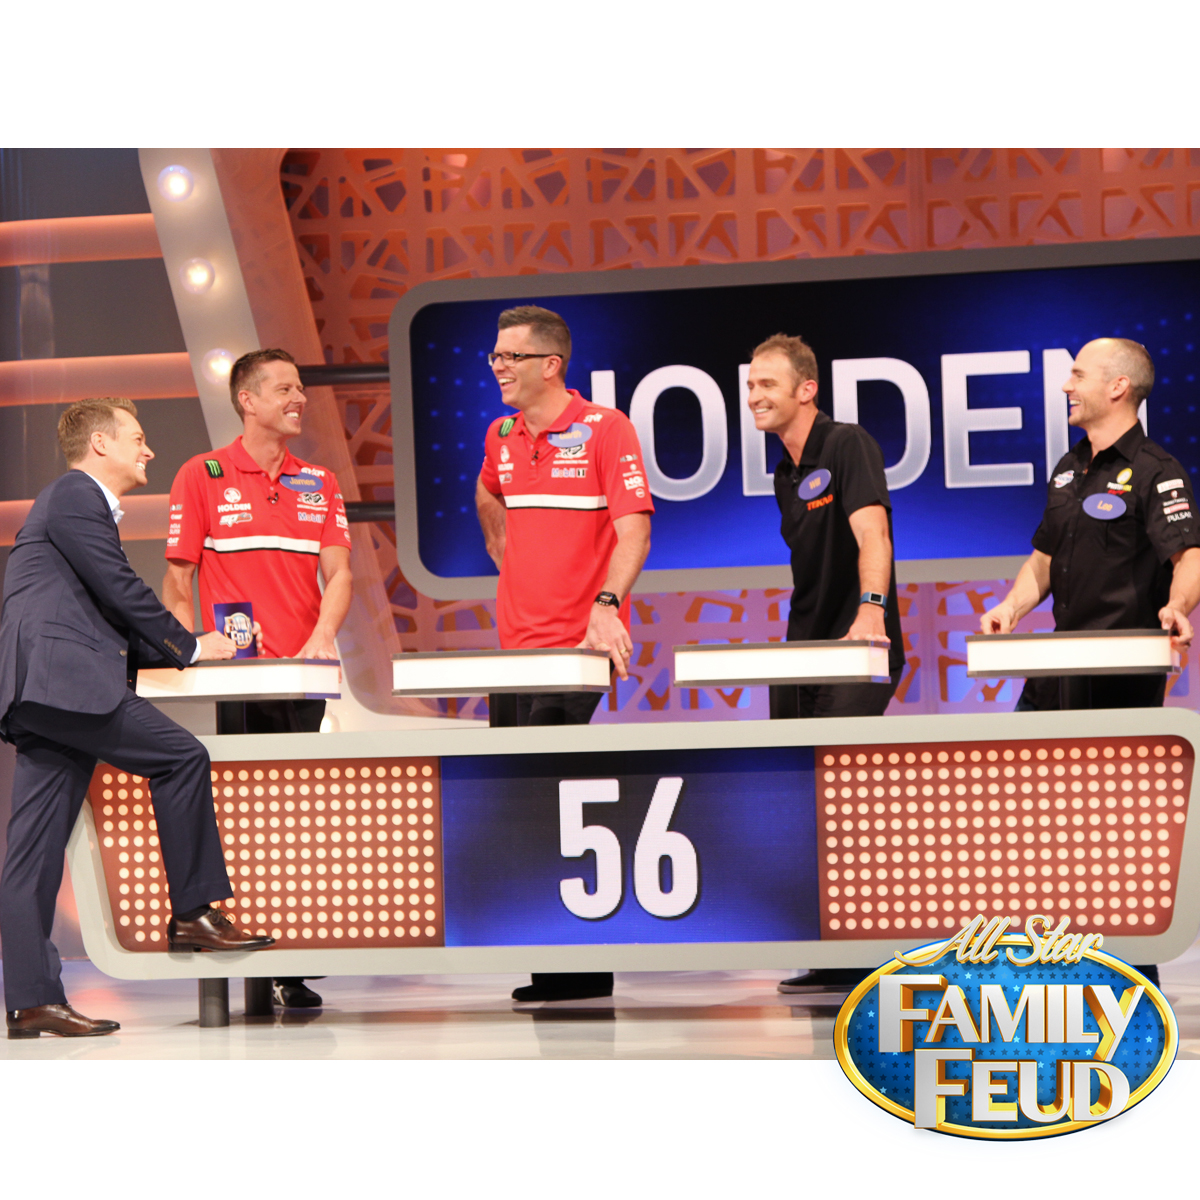 Family Feud holden team